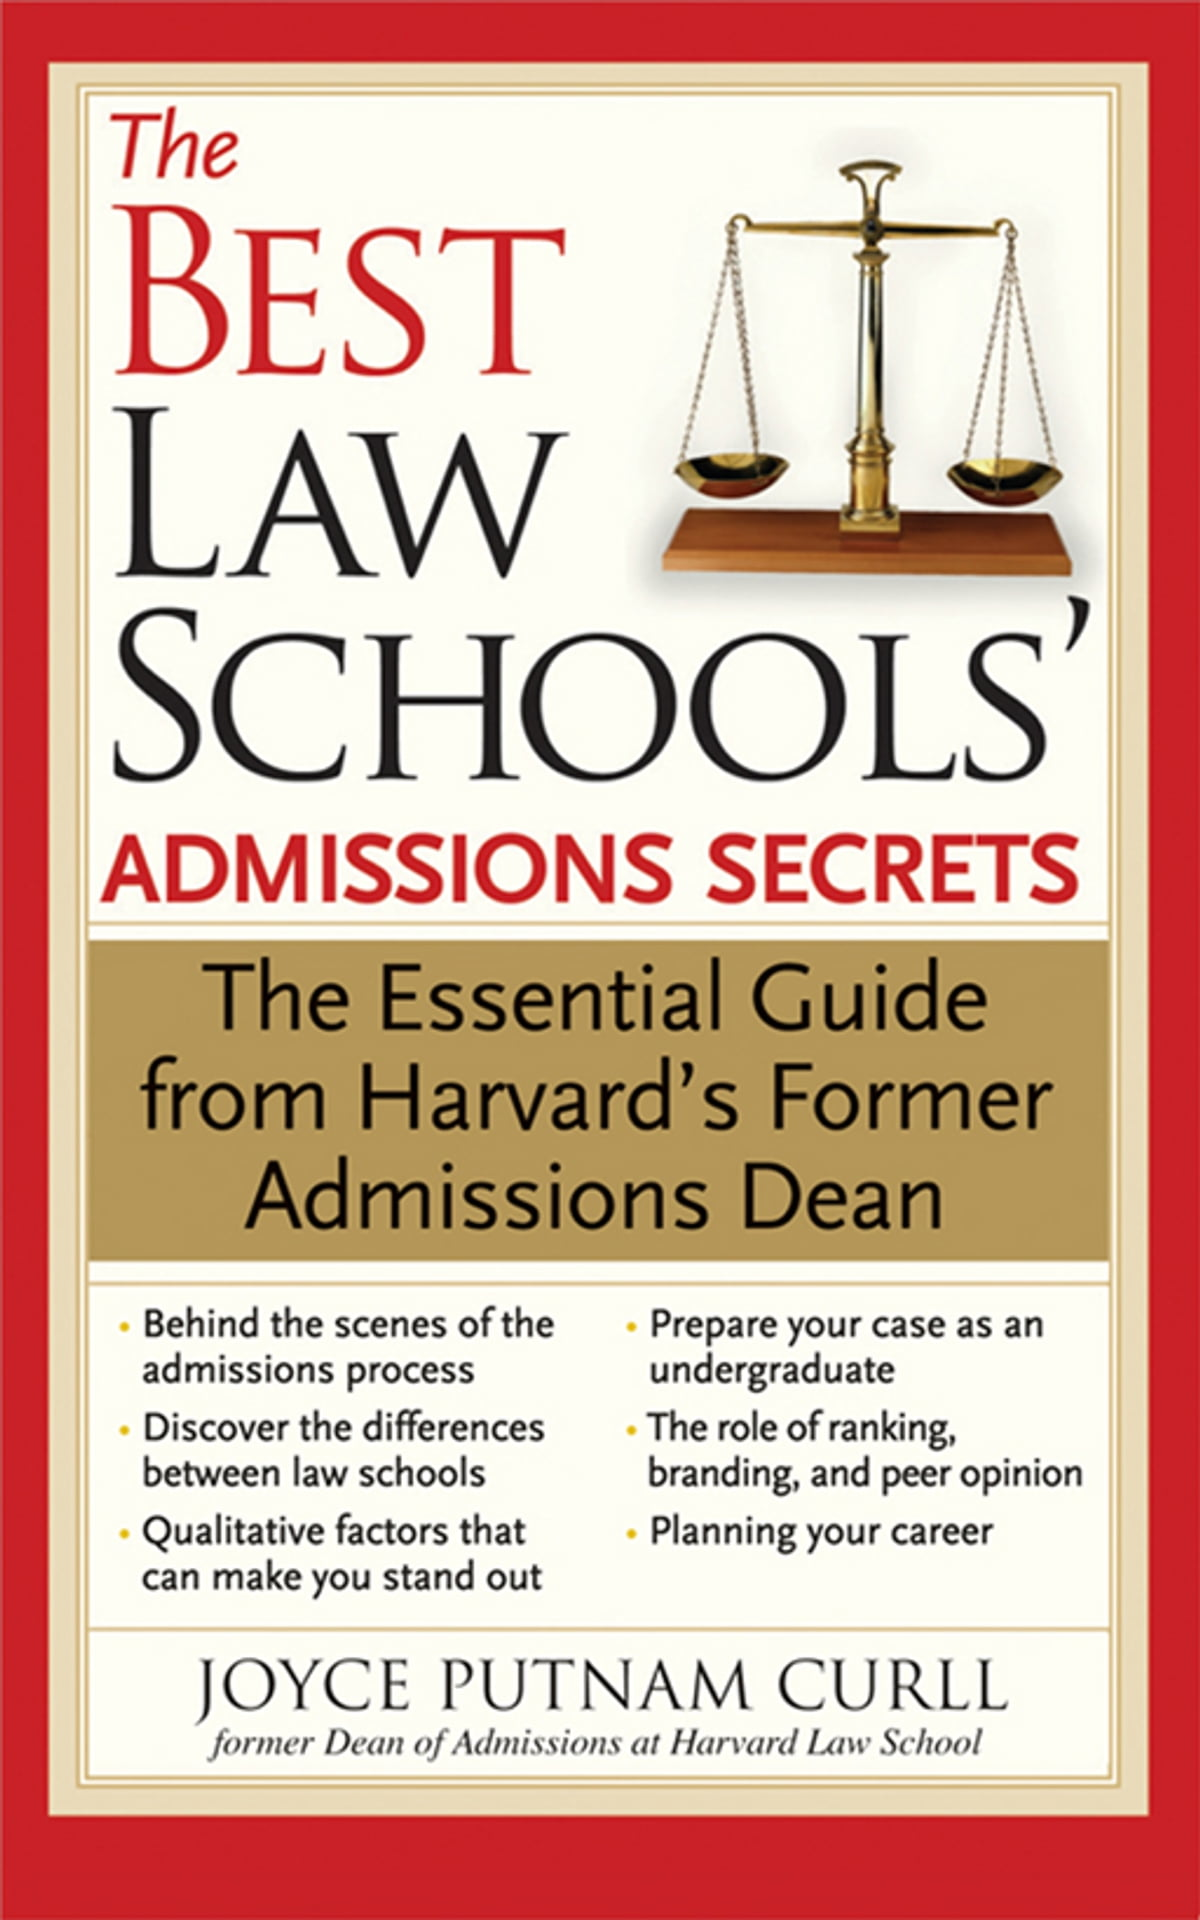 Best Law Schools' Admissions Secrets: The Essential Guide from Harvard's  Former Admissions Dean ebook by Joyce Putnam Curll - Rakuten Kobo